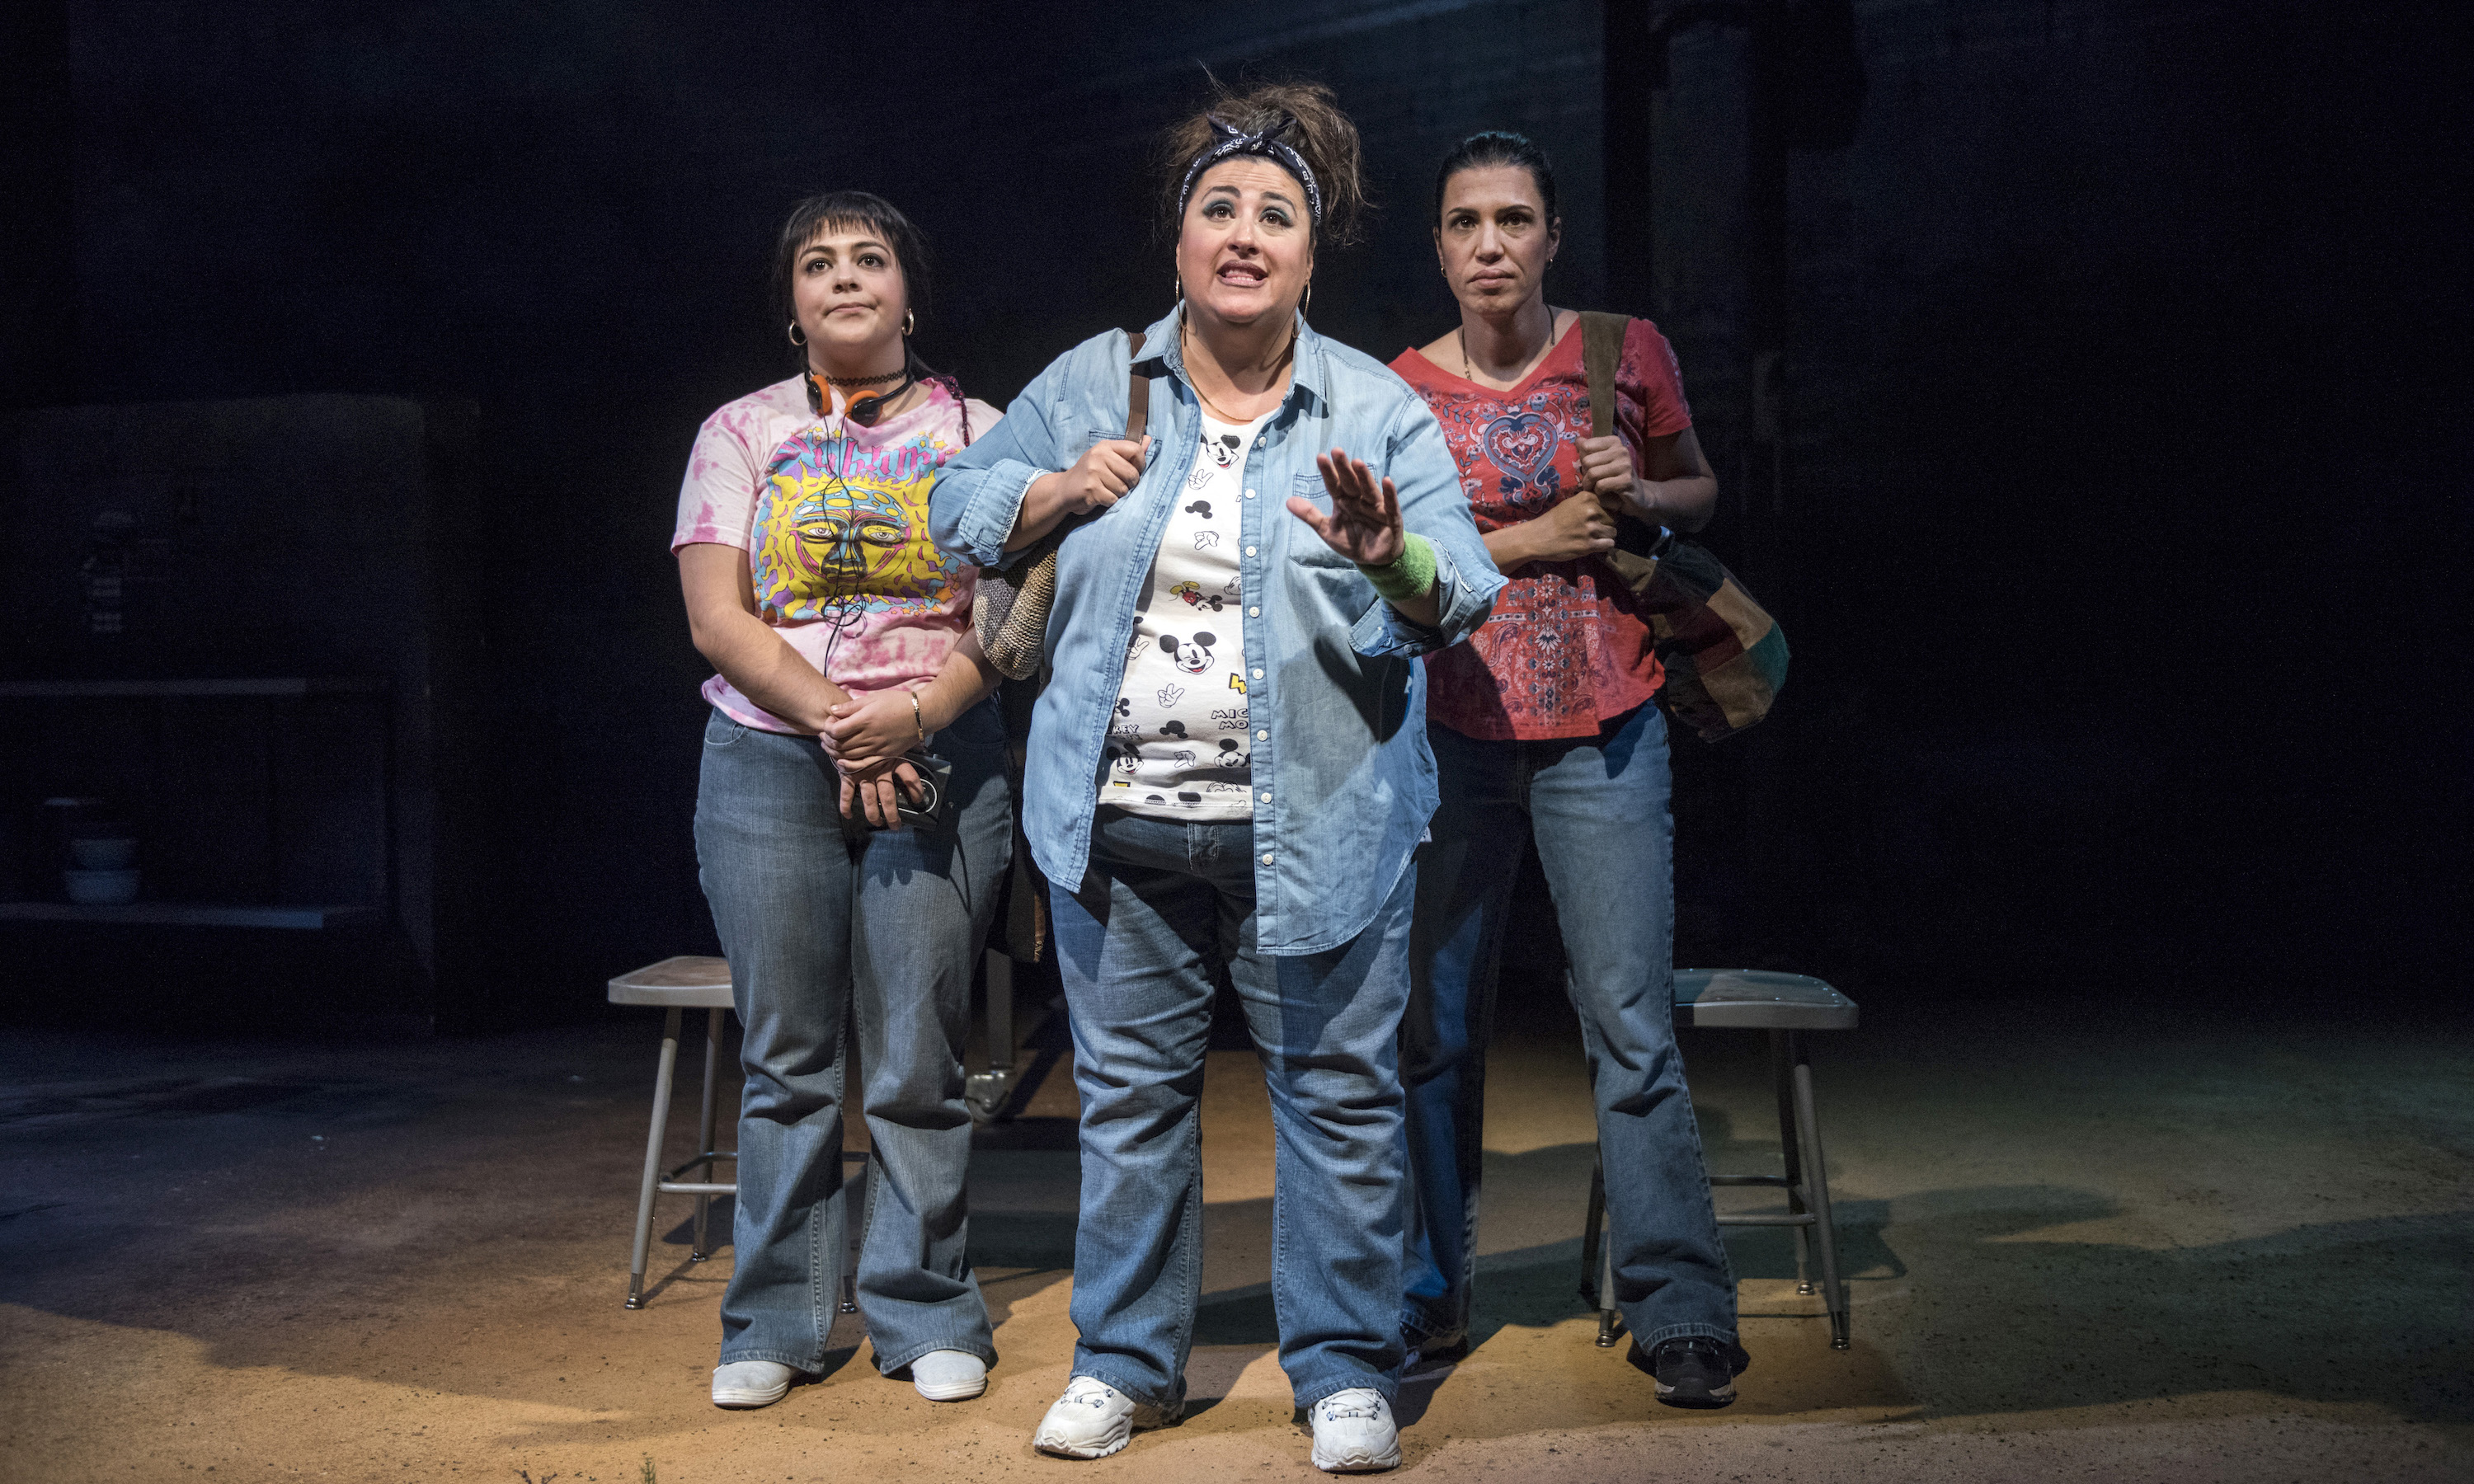 Three women huddled on stage